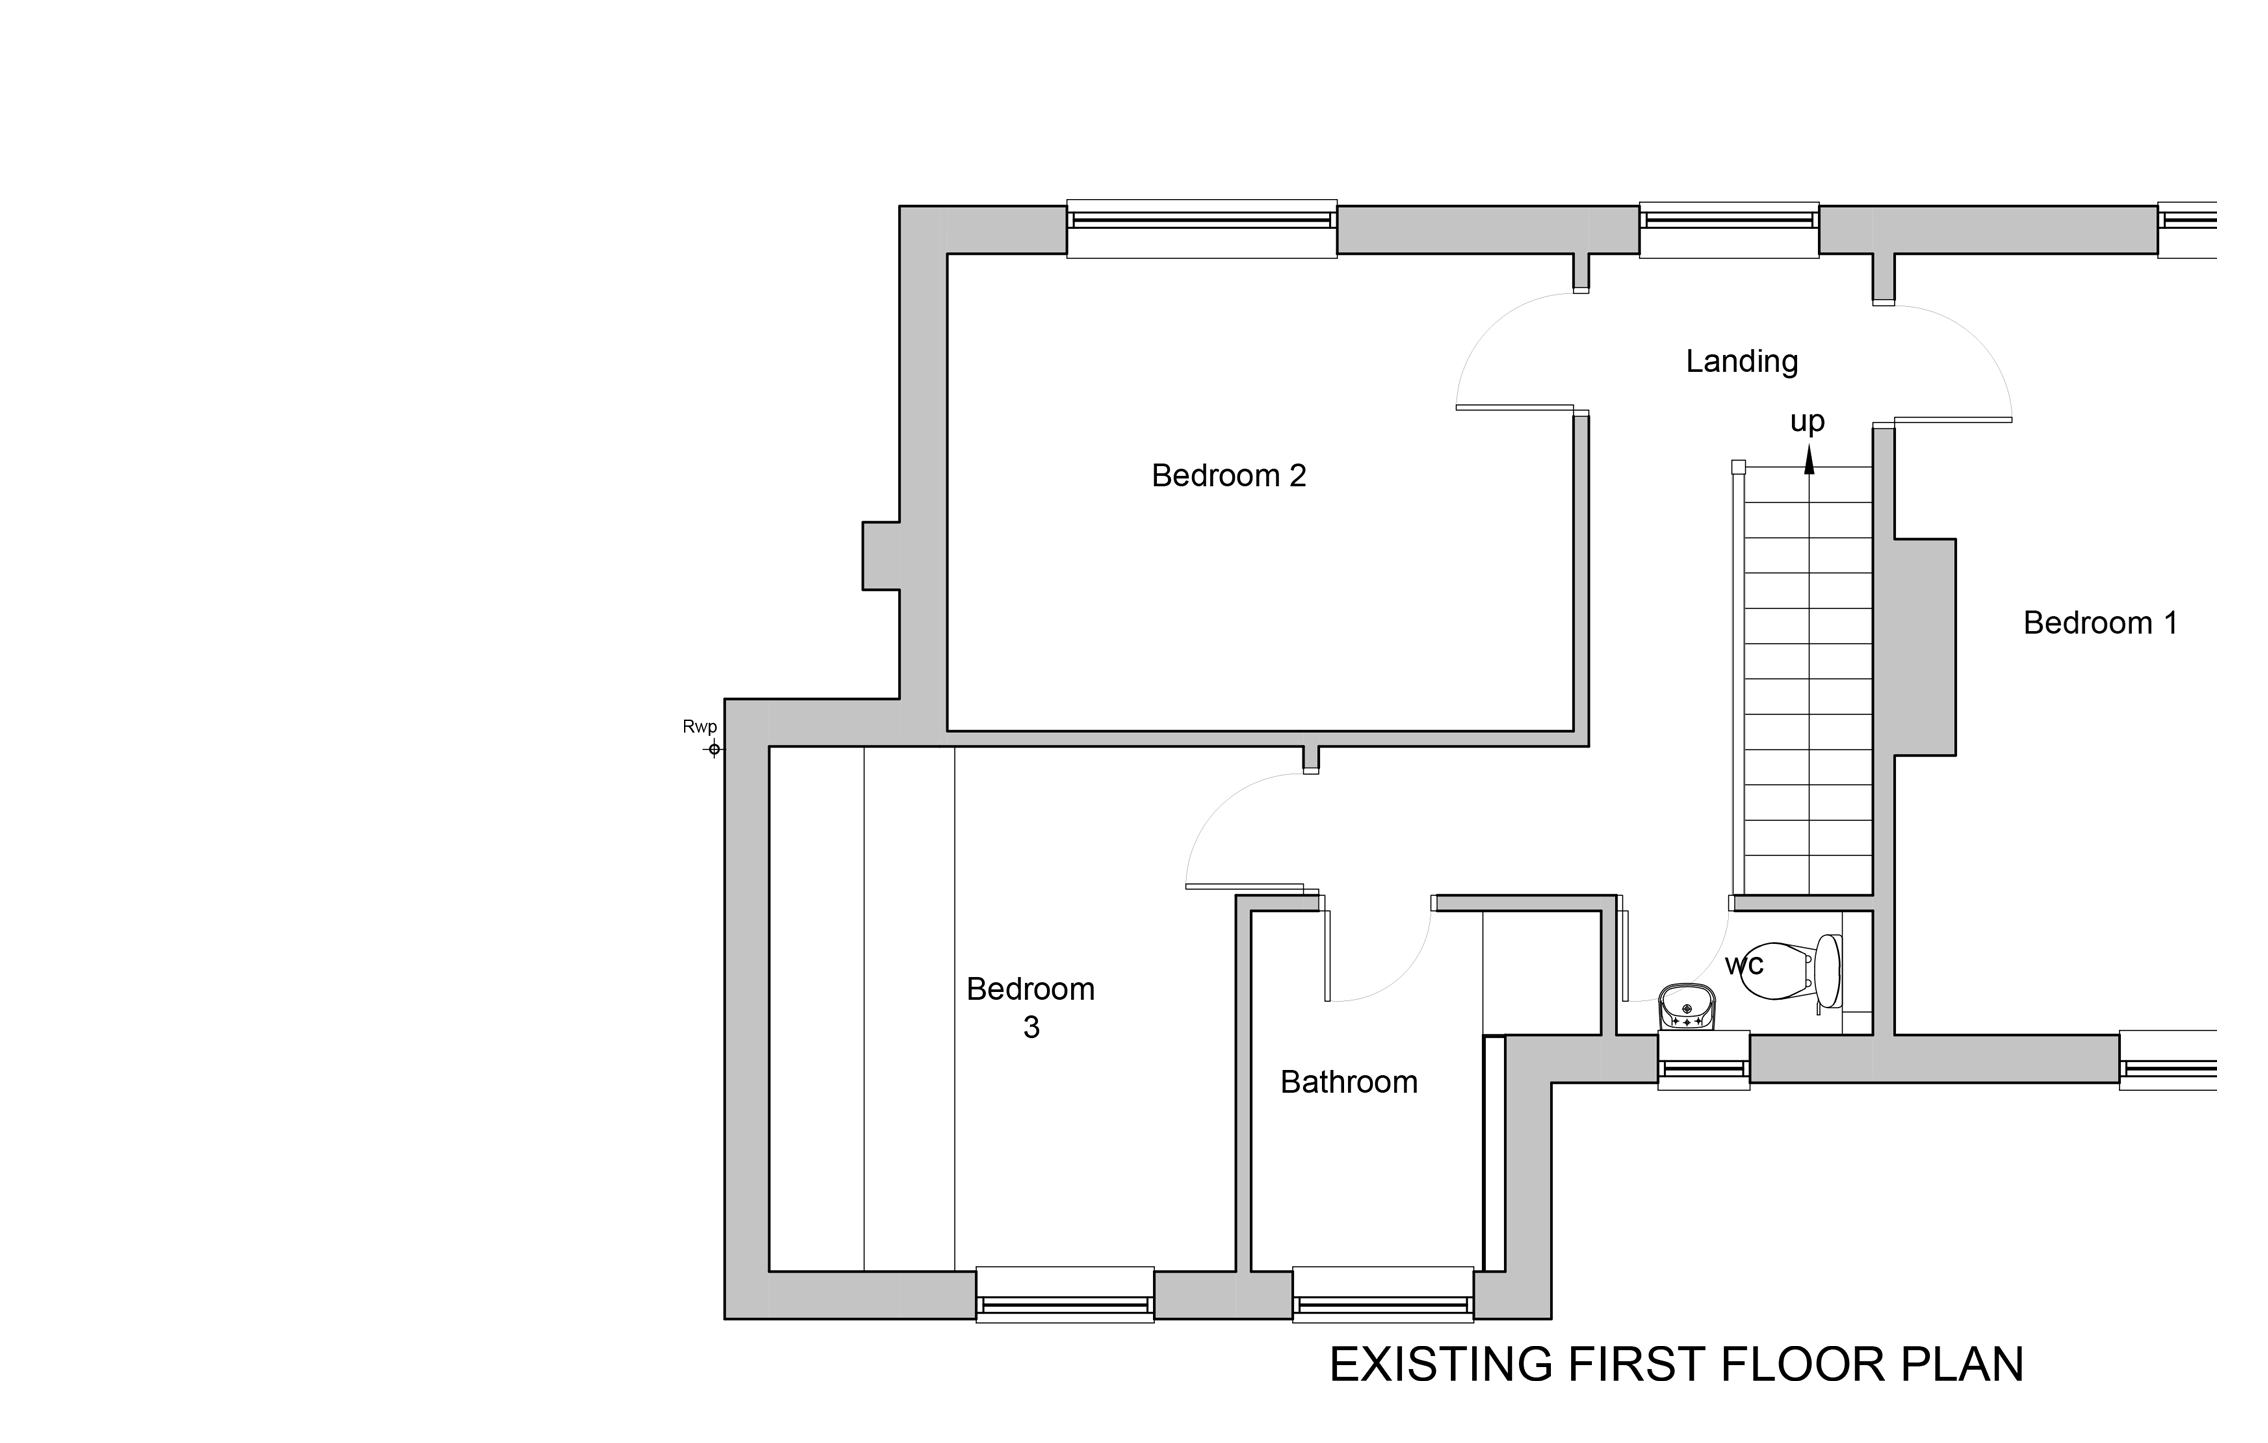 First Floor Existing